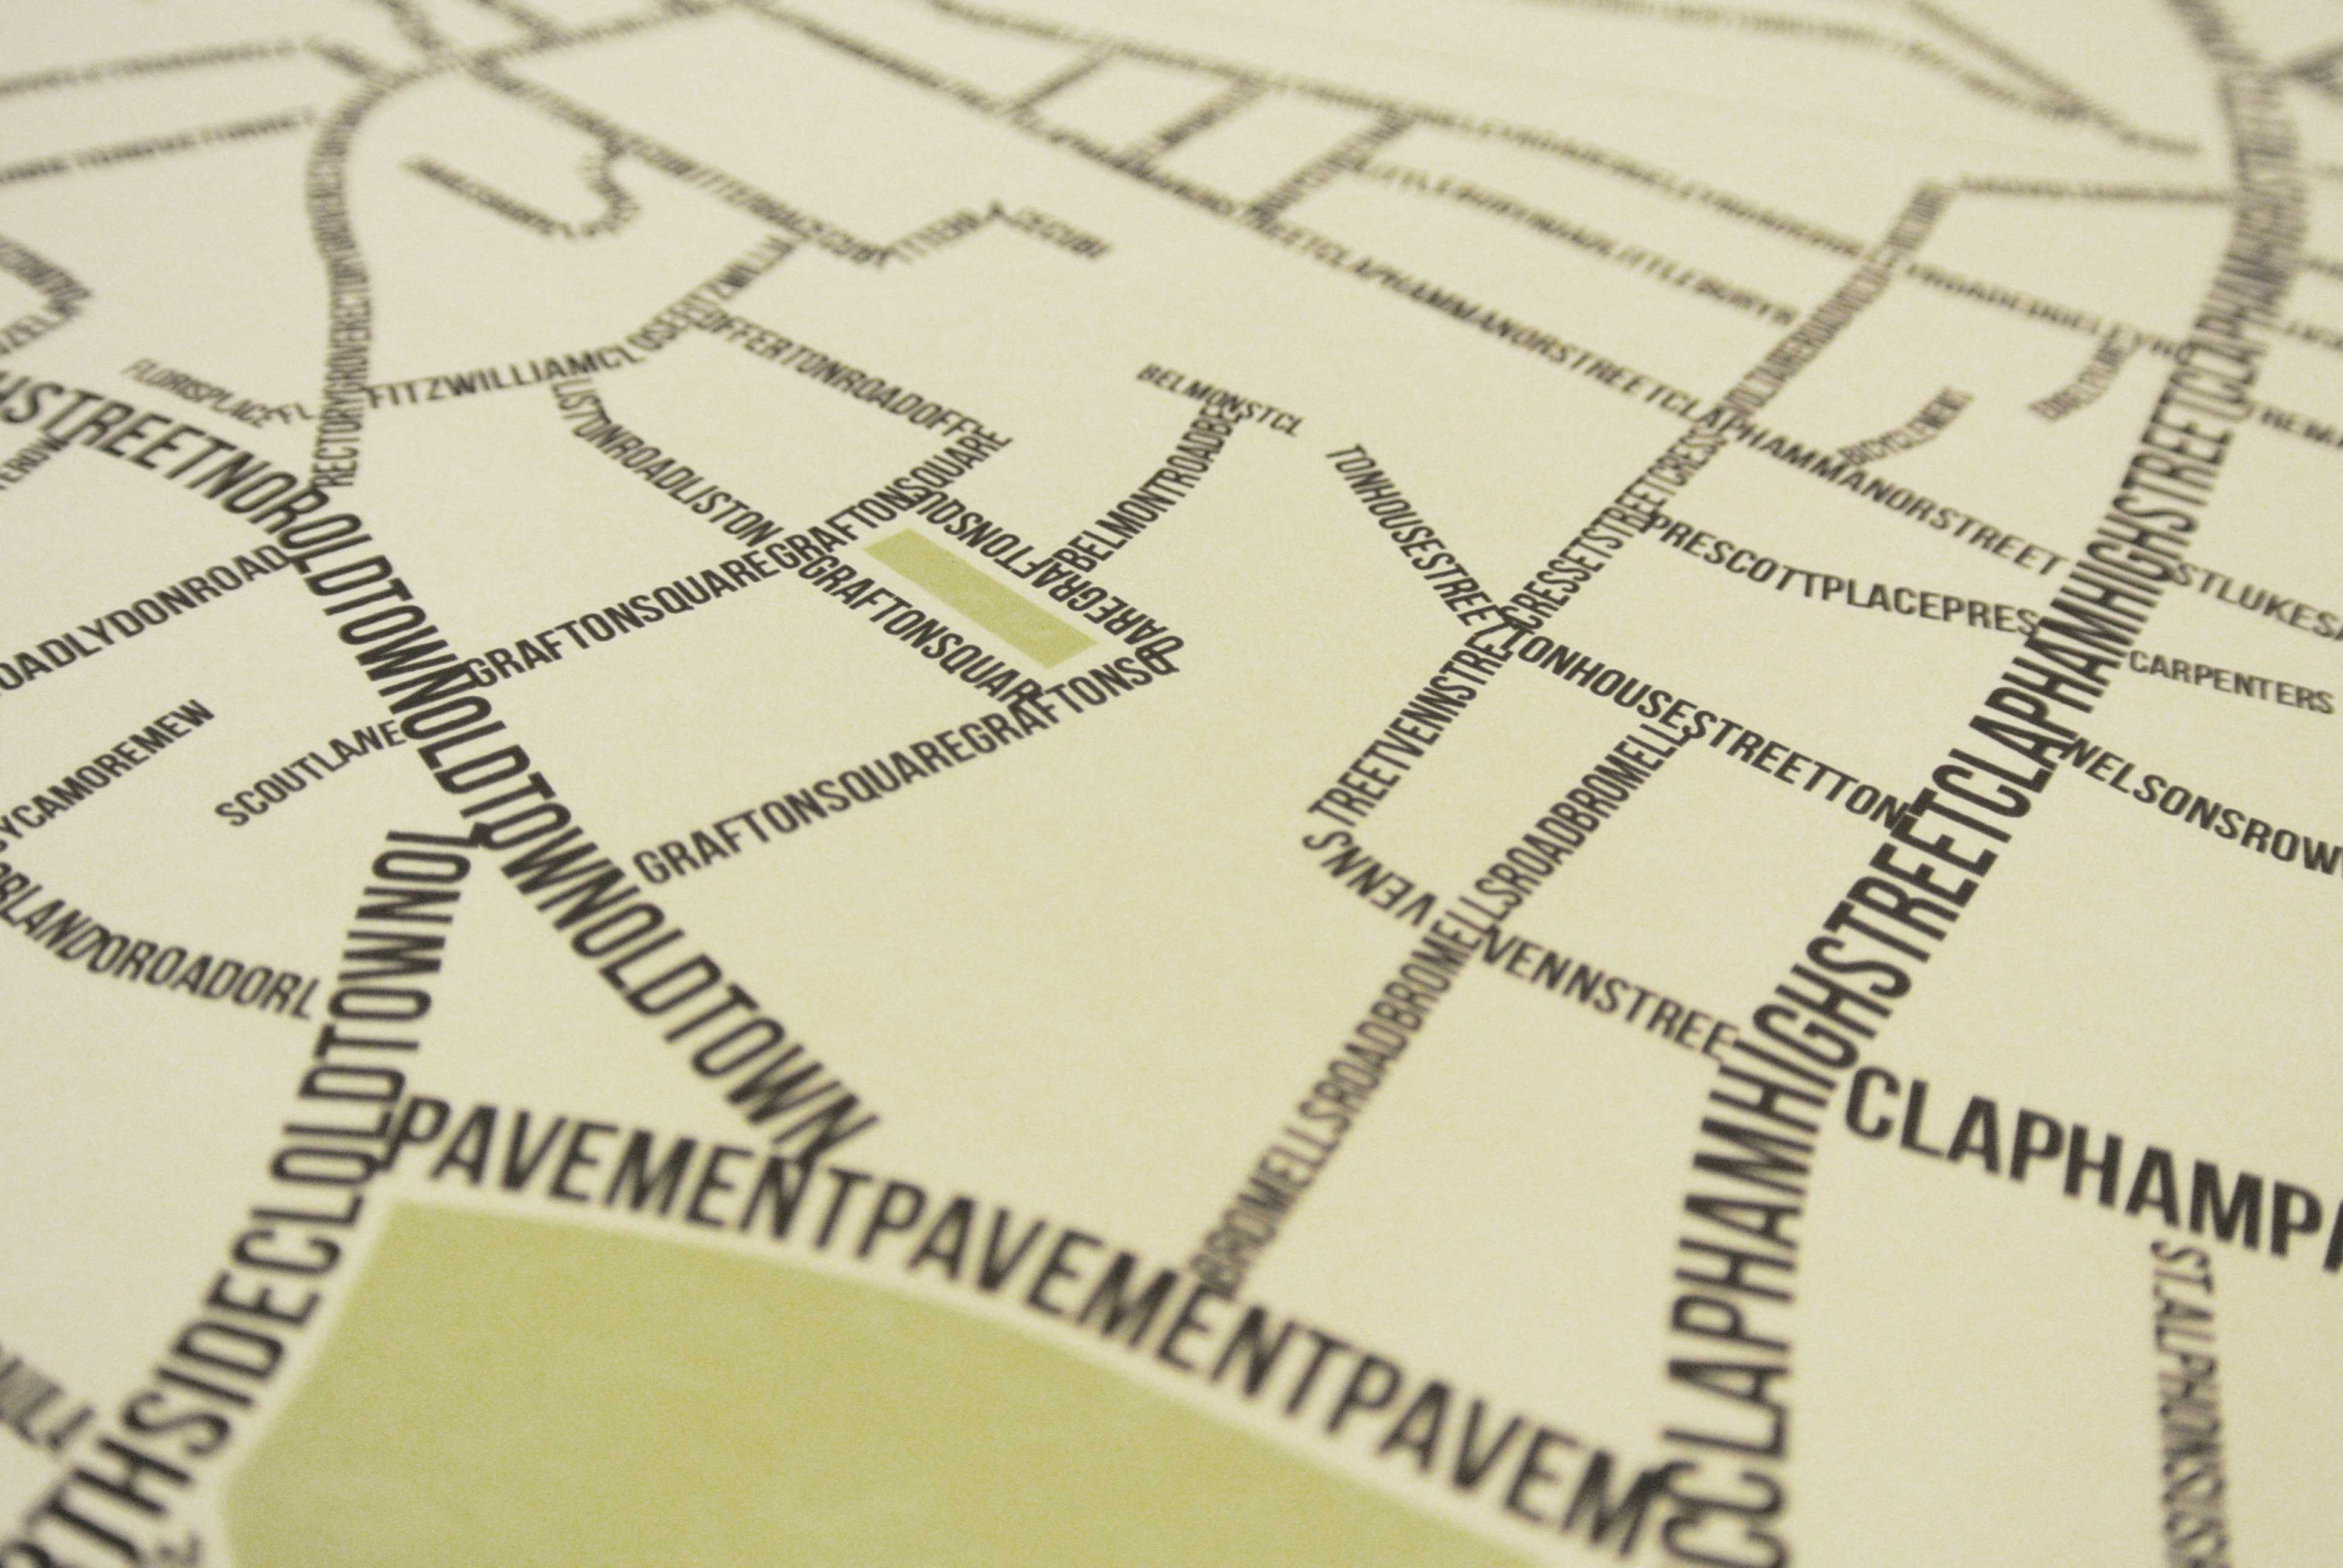 Place in Print South London Prints Clapham Common Street Typography Typographic Map Art Print Photo